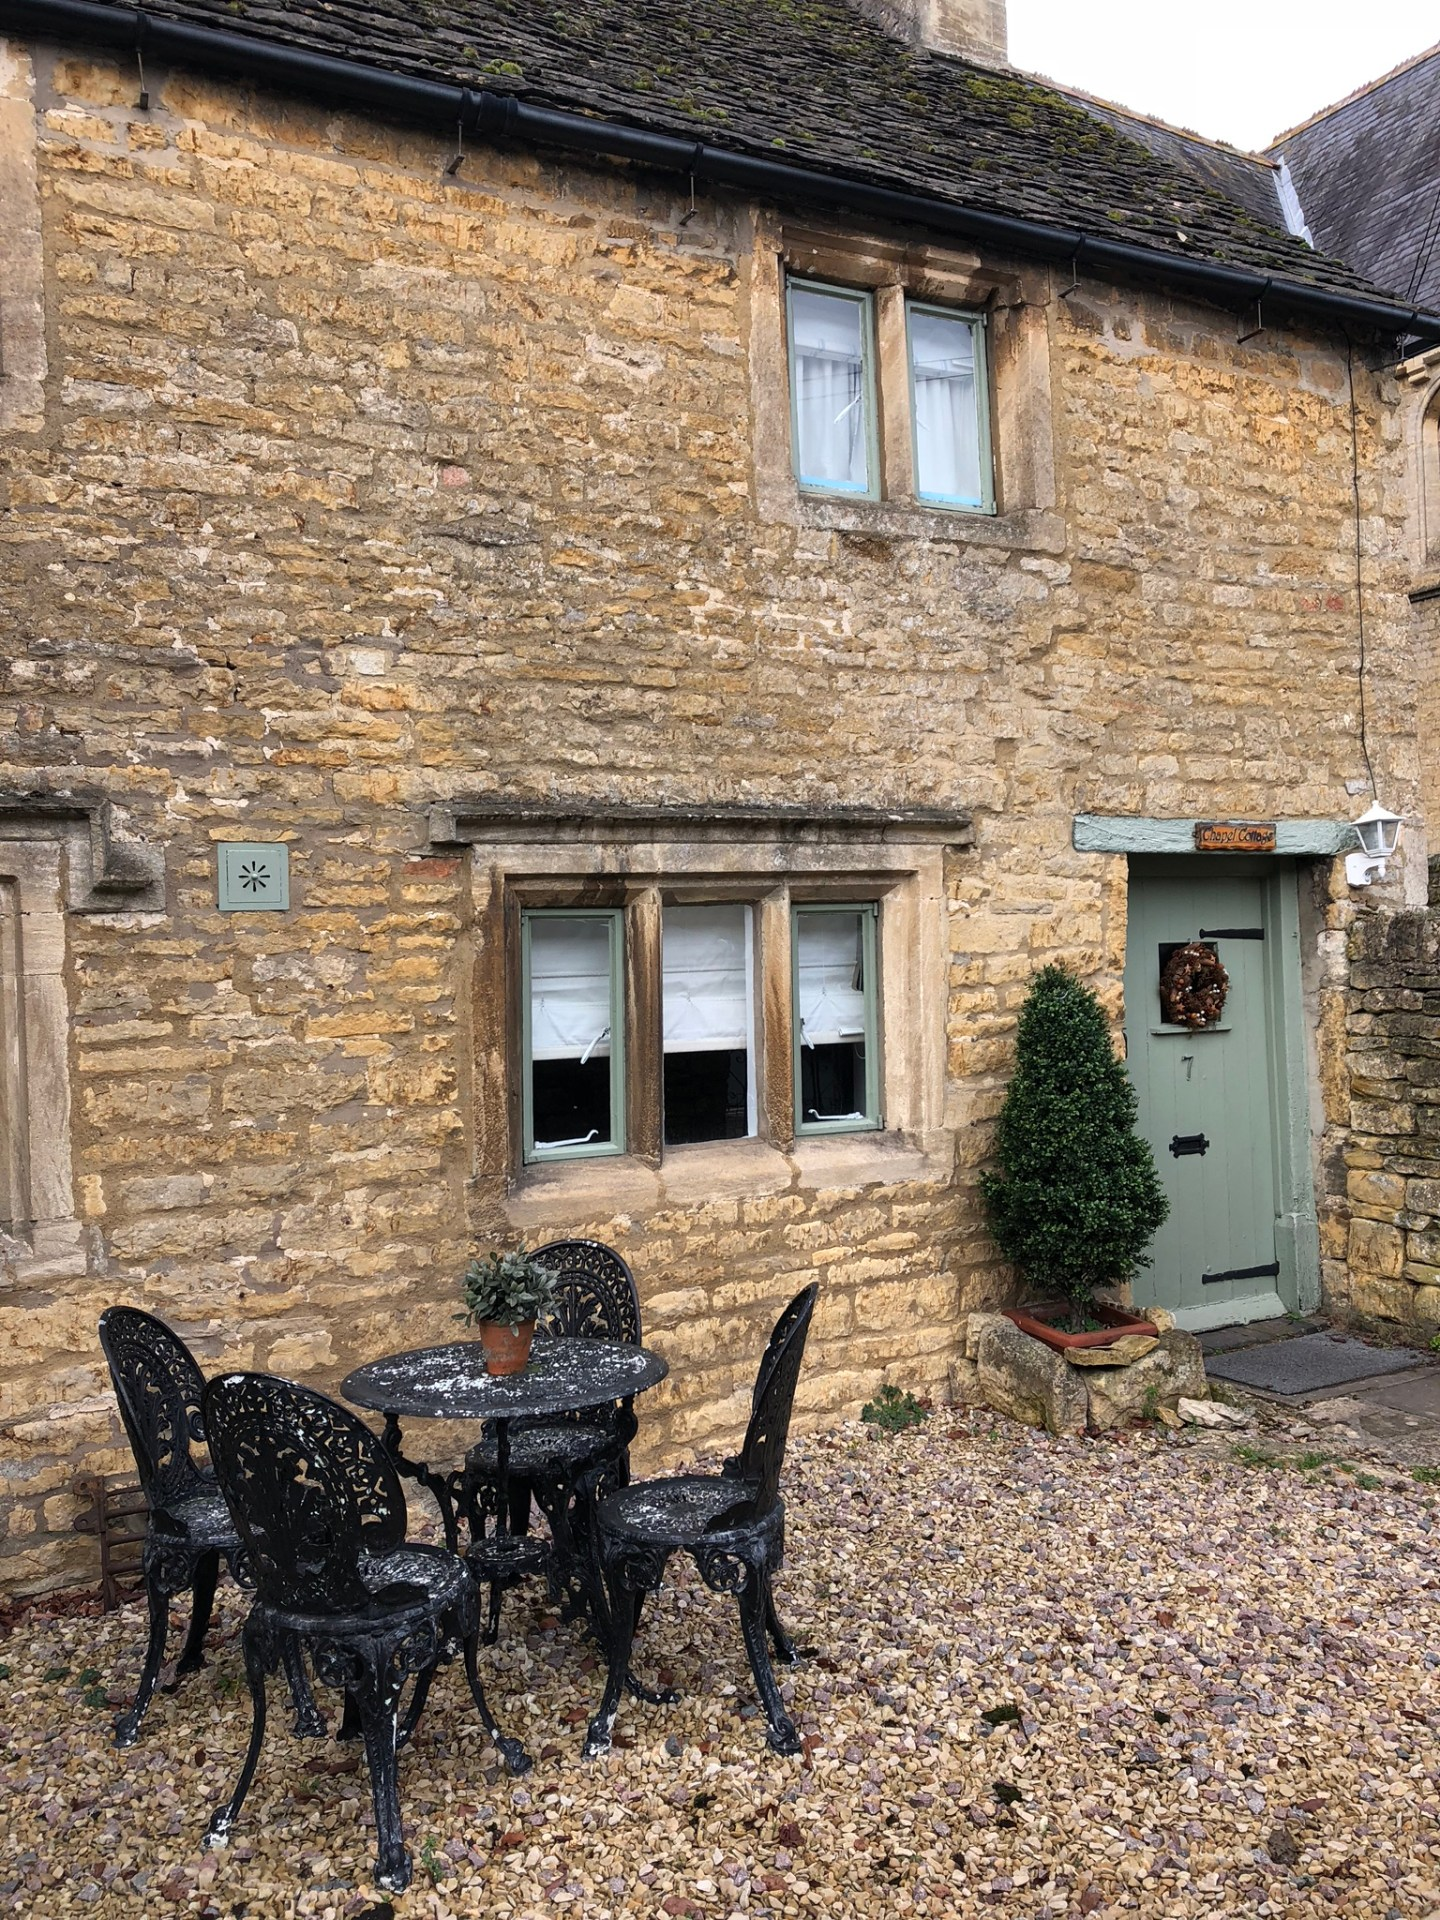 A cute house in Bourton-on-the-Water, Gloucestershire